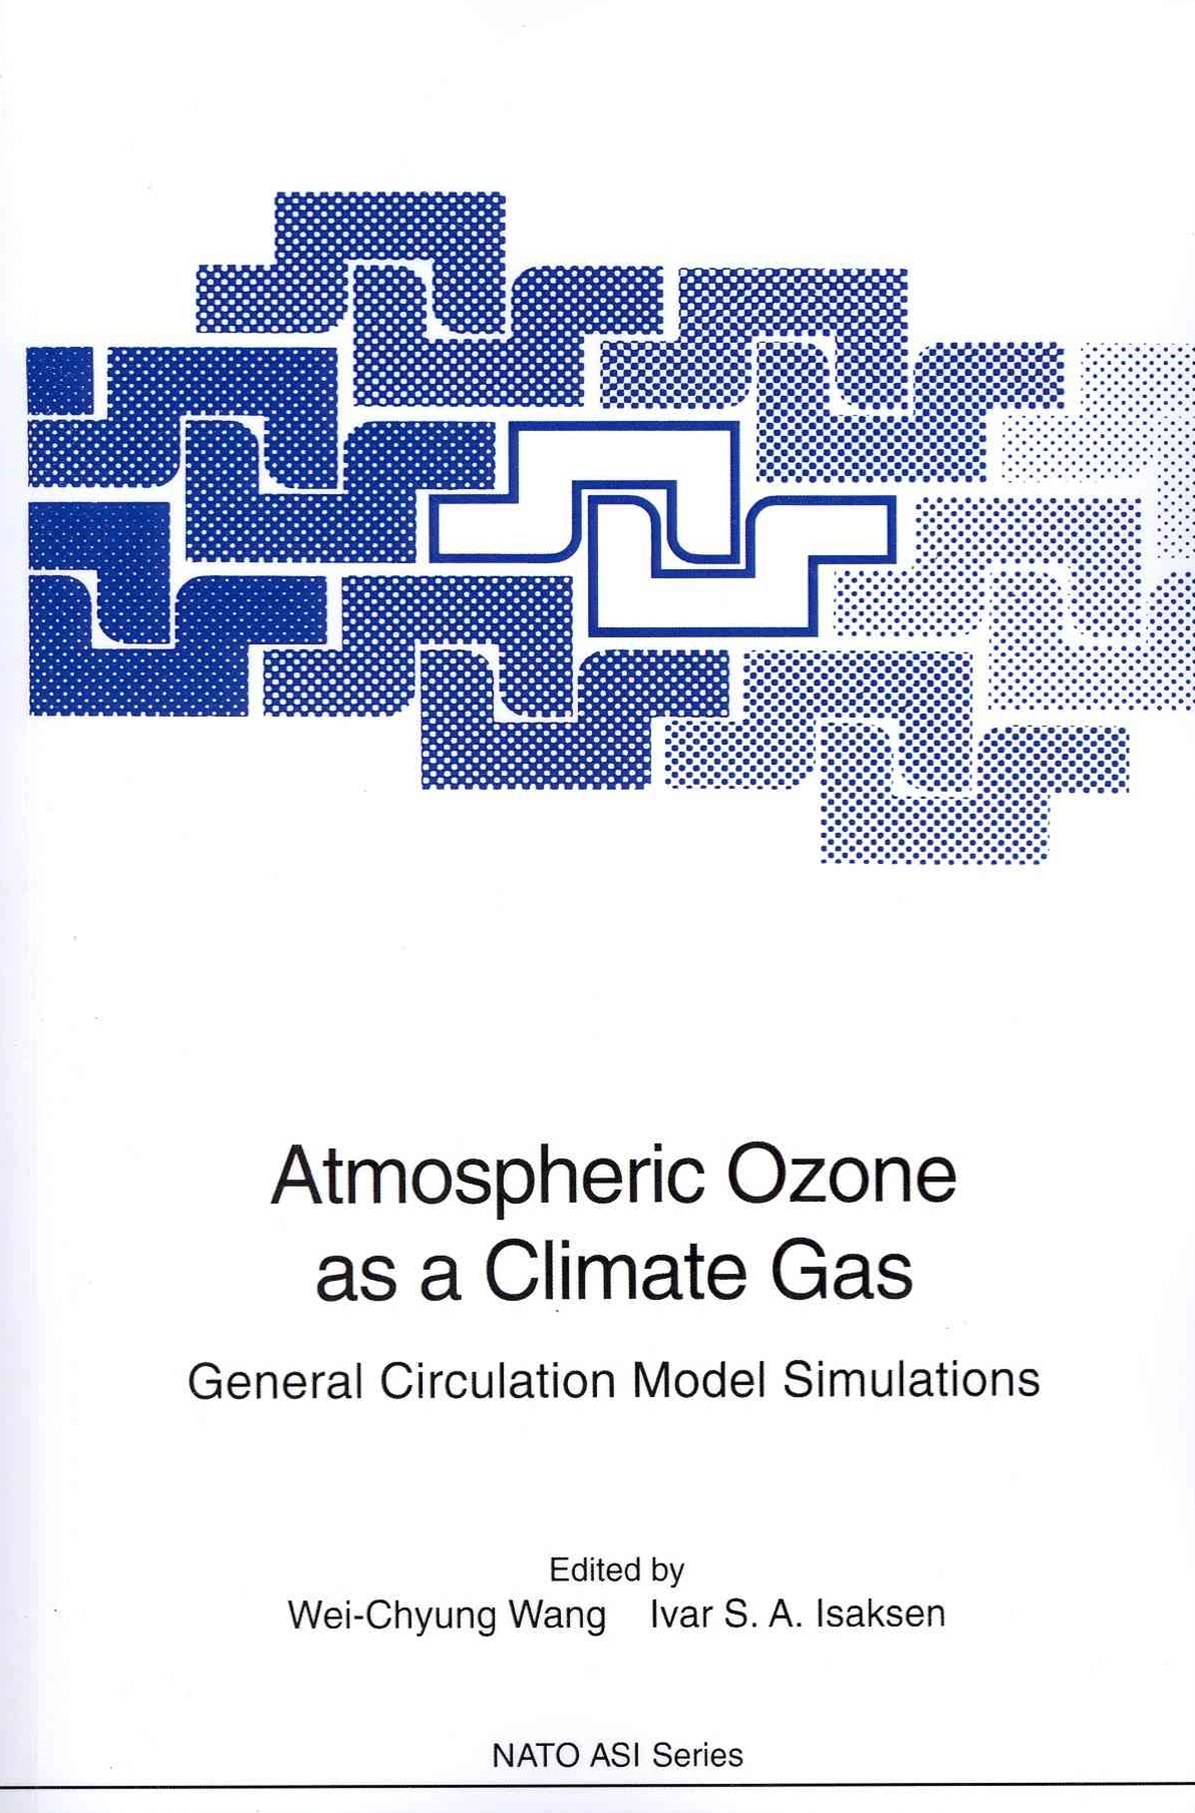 Atmospheric Ozone As a Climate Gas